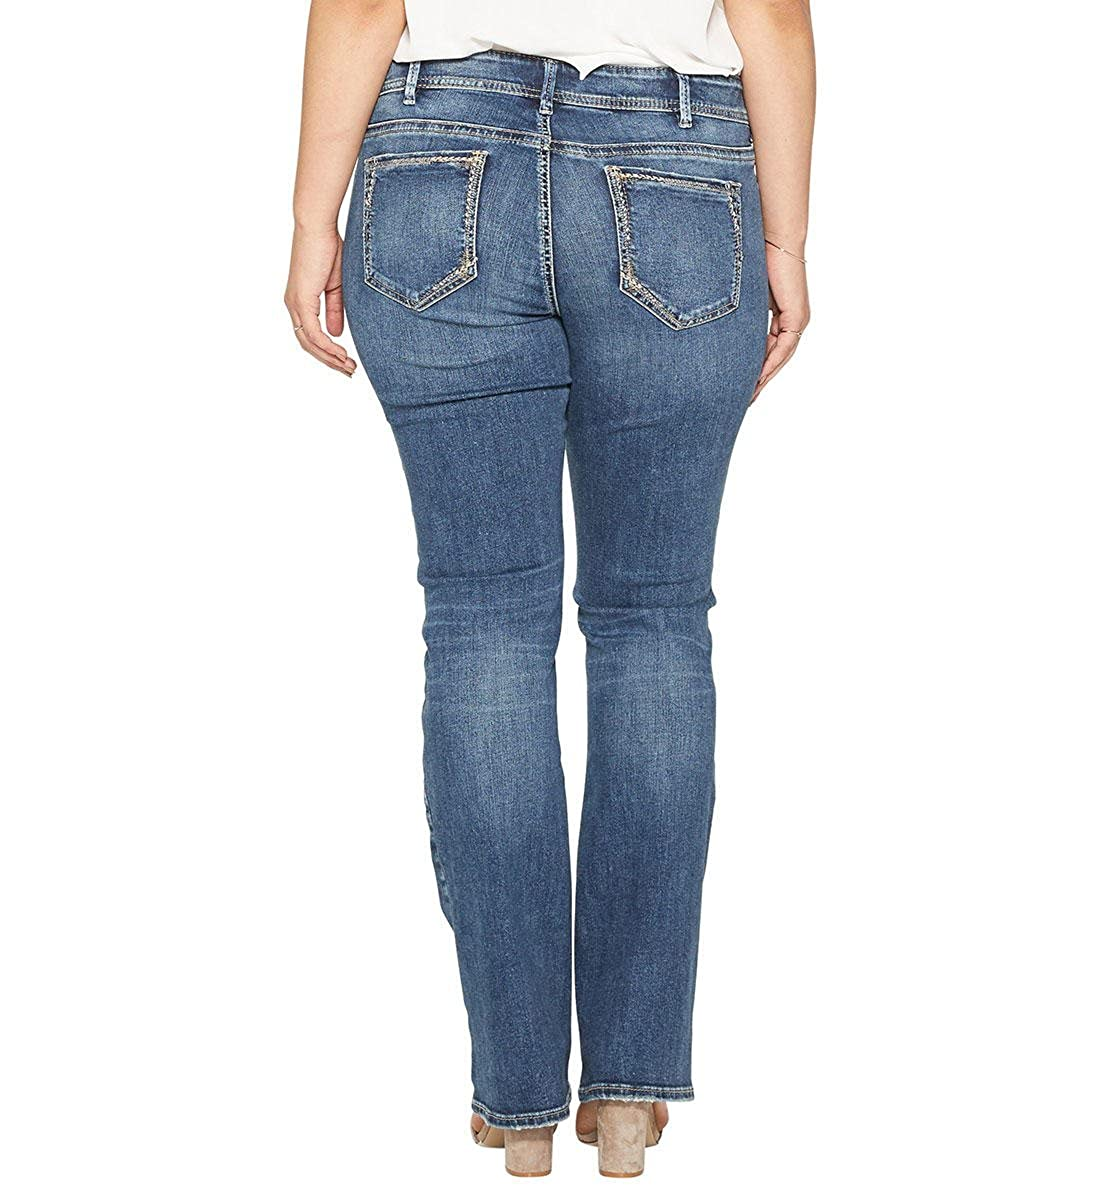 d81c27c81369e Womens Plus Size Elyse Relaxed Fit Mid Rise Slim Bootcut Jeans 2000257749  Silver ...